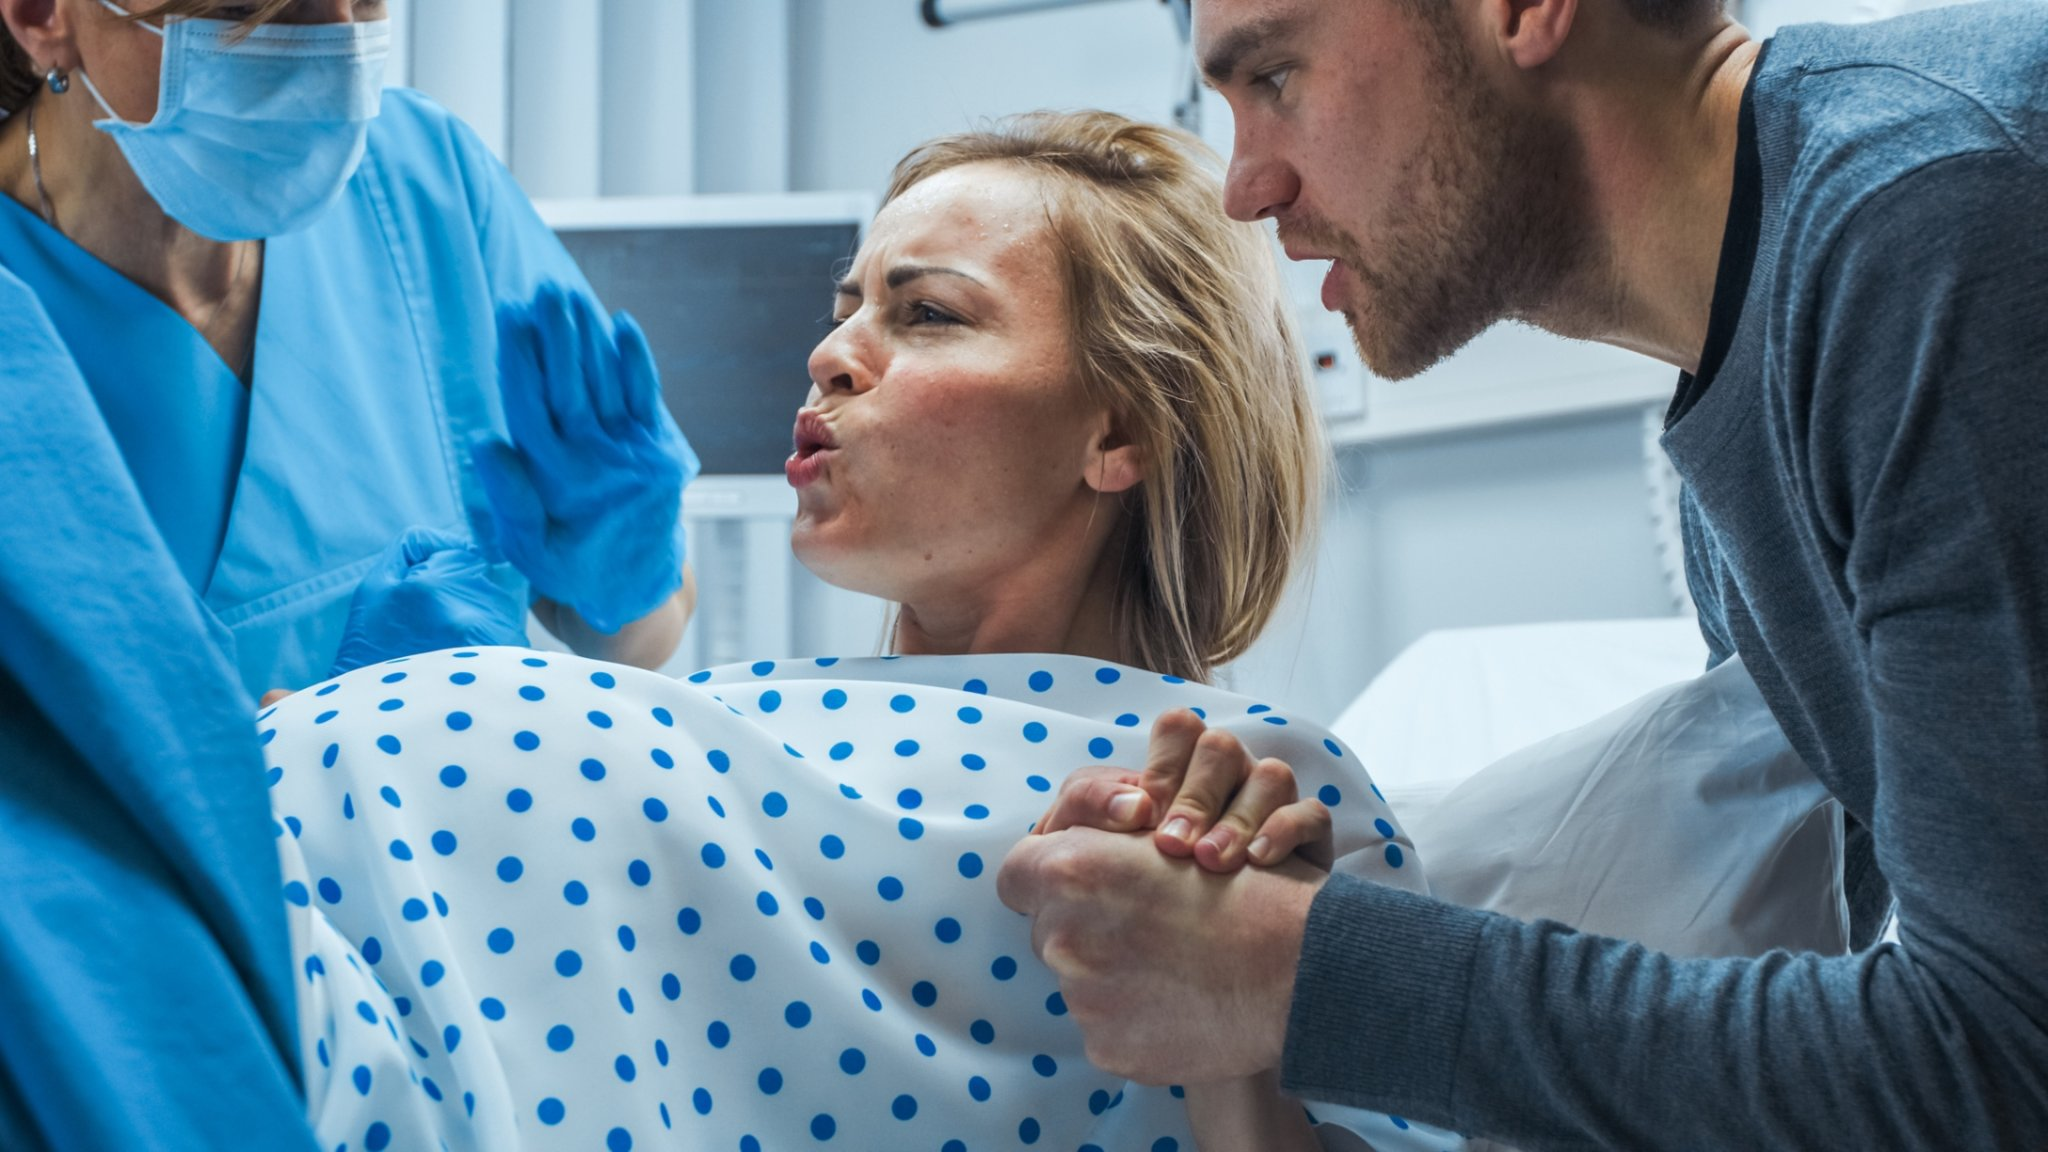 Dad Who Can't Handle Stress of Being in Delivery Room Expects Laboring Wife To Comfort Him